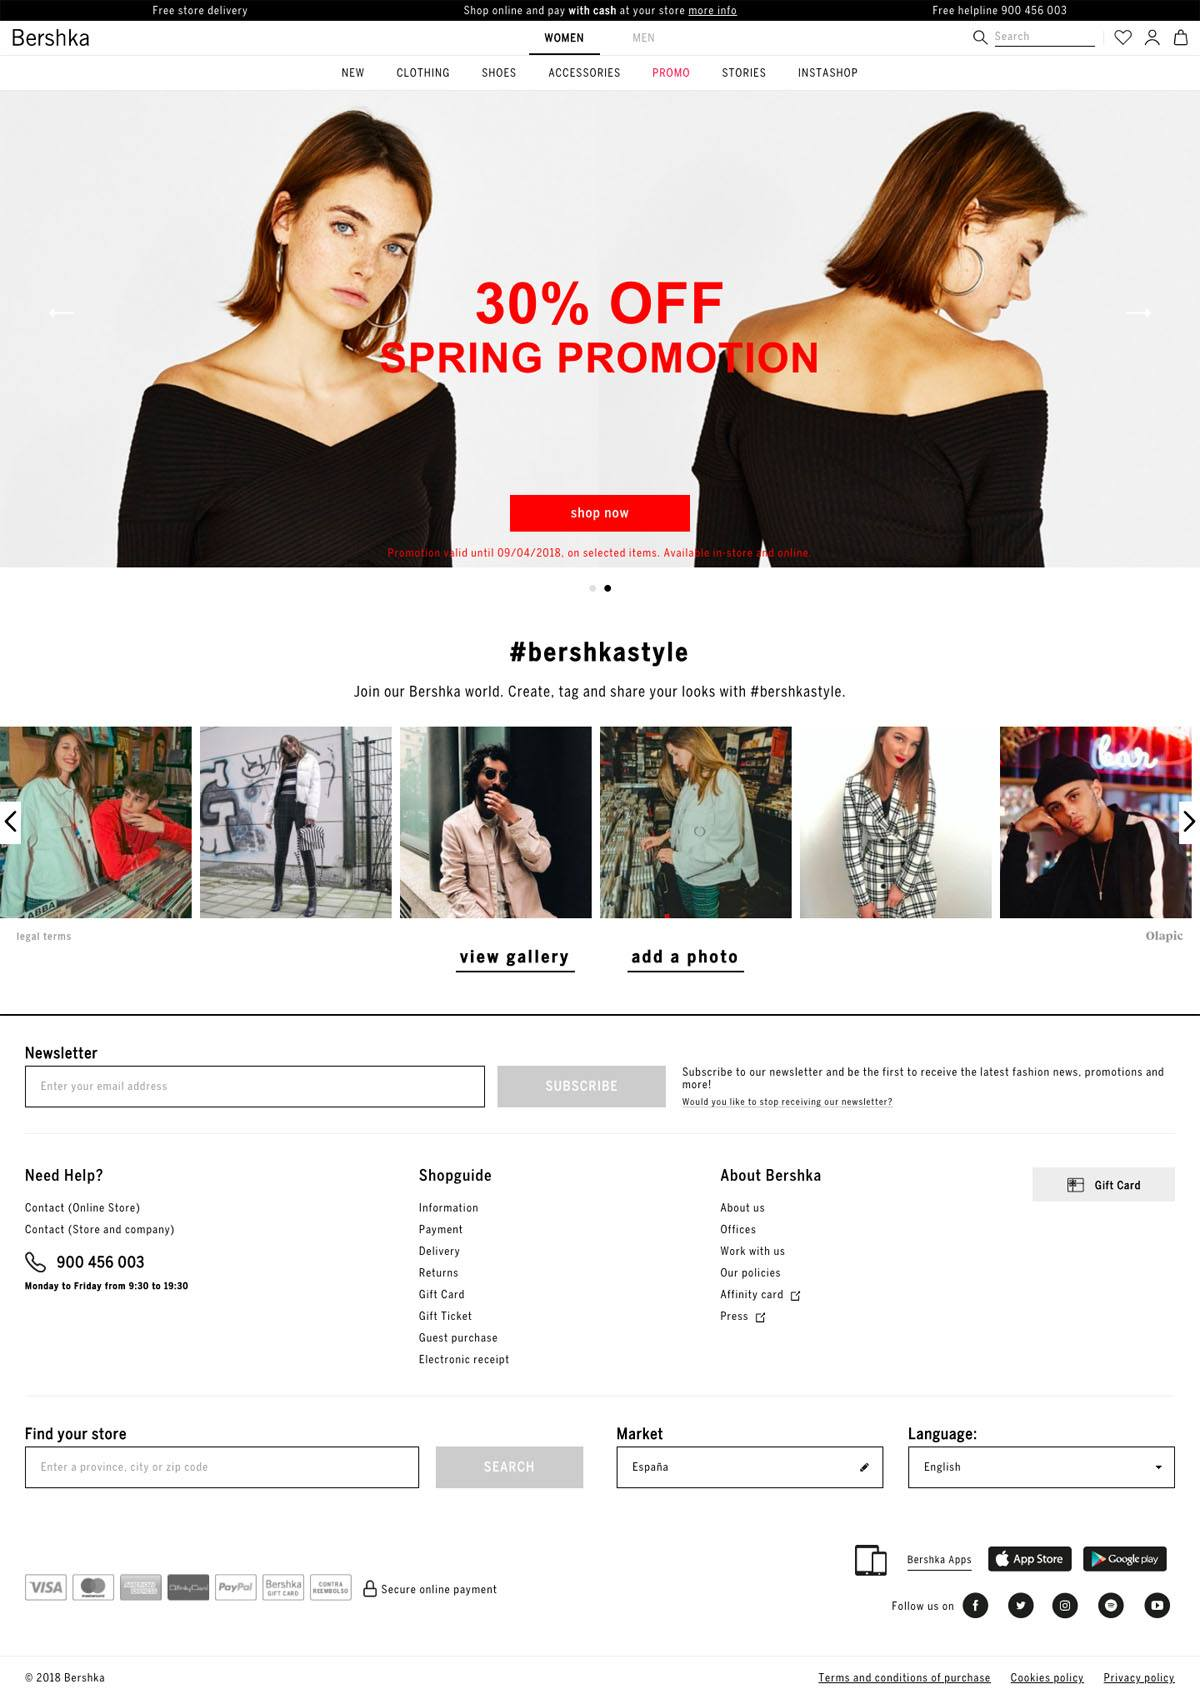 eCommerce website: Bershka